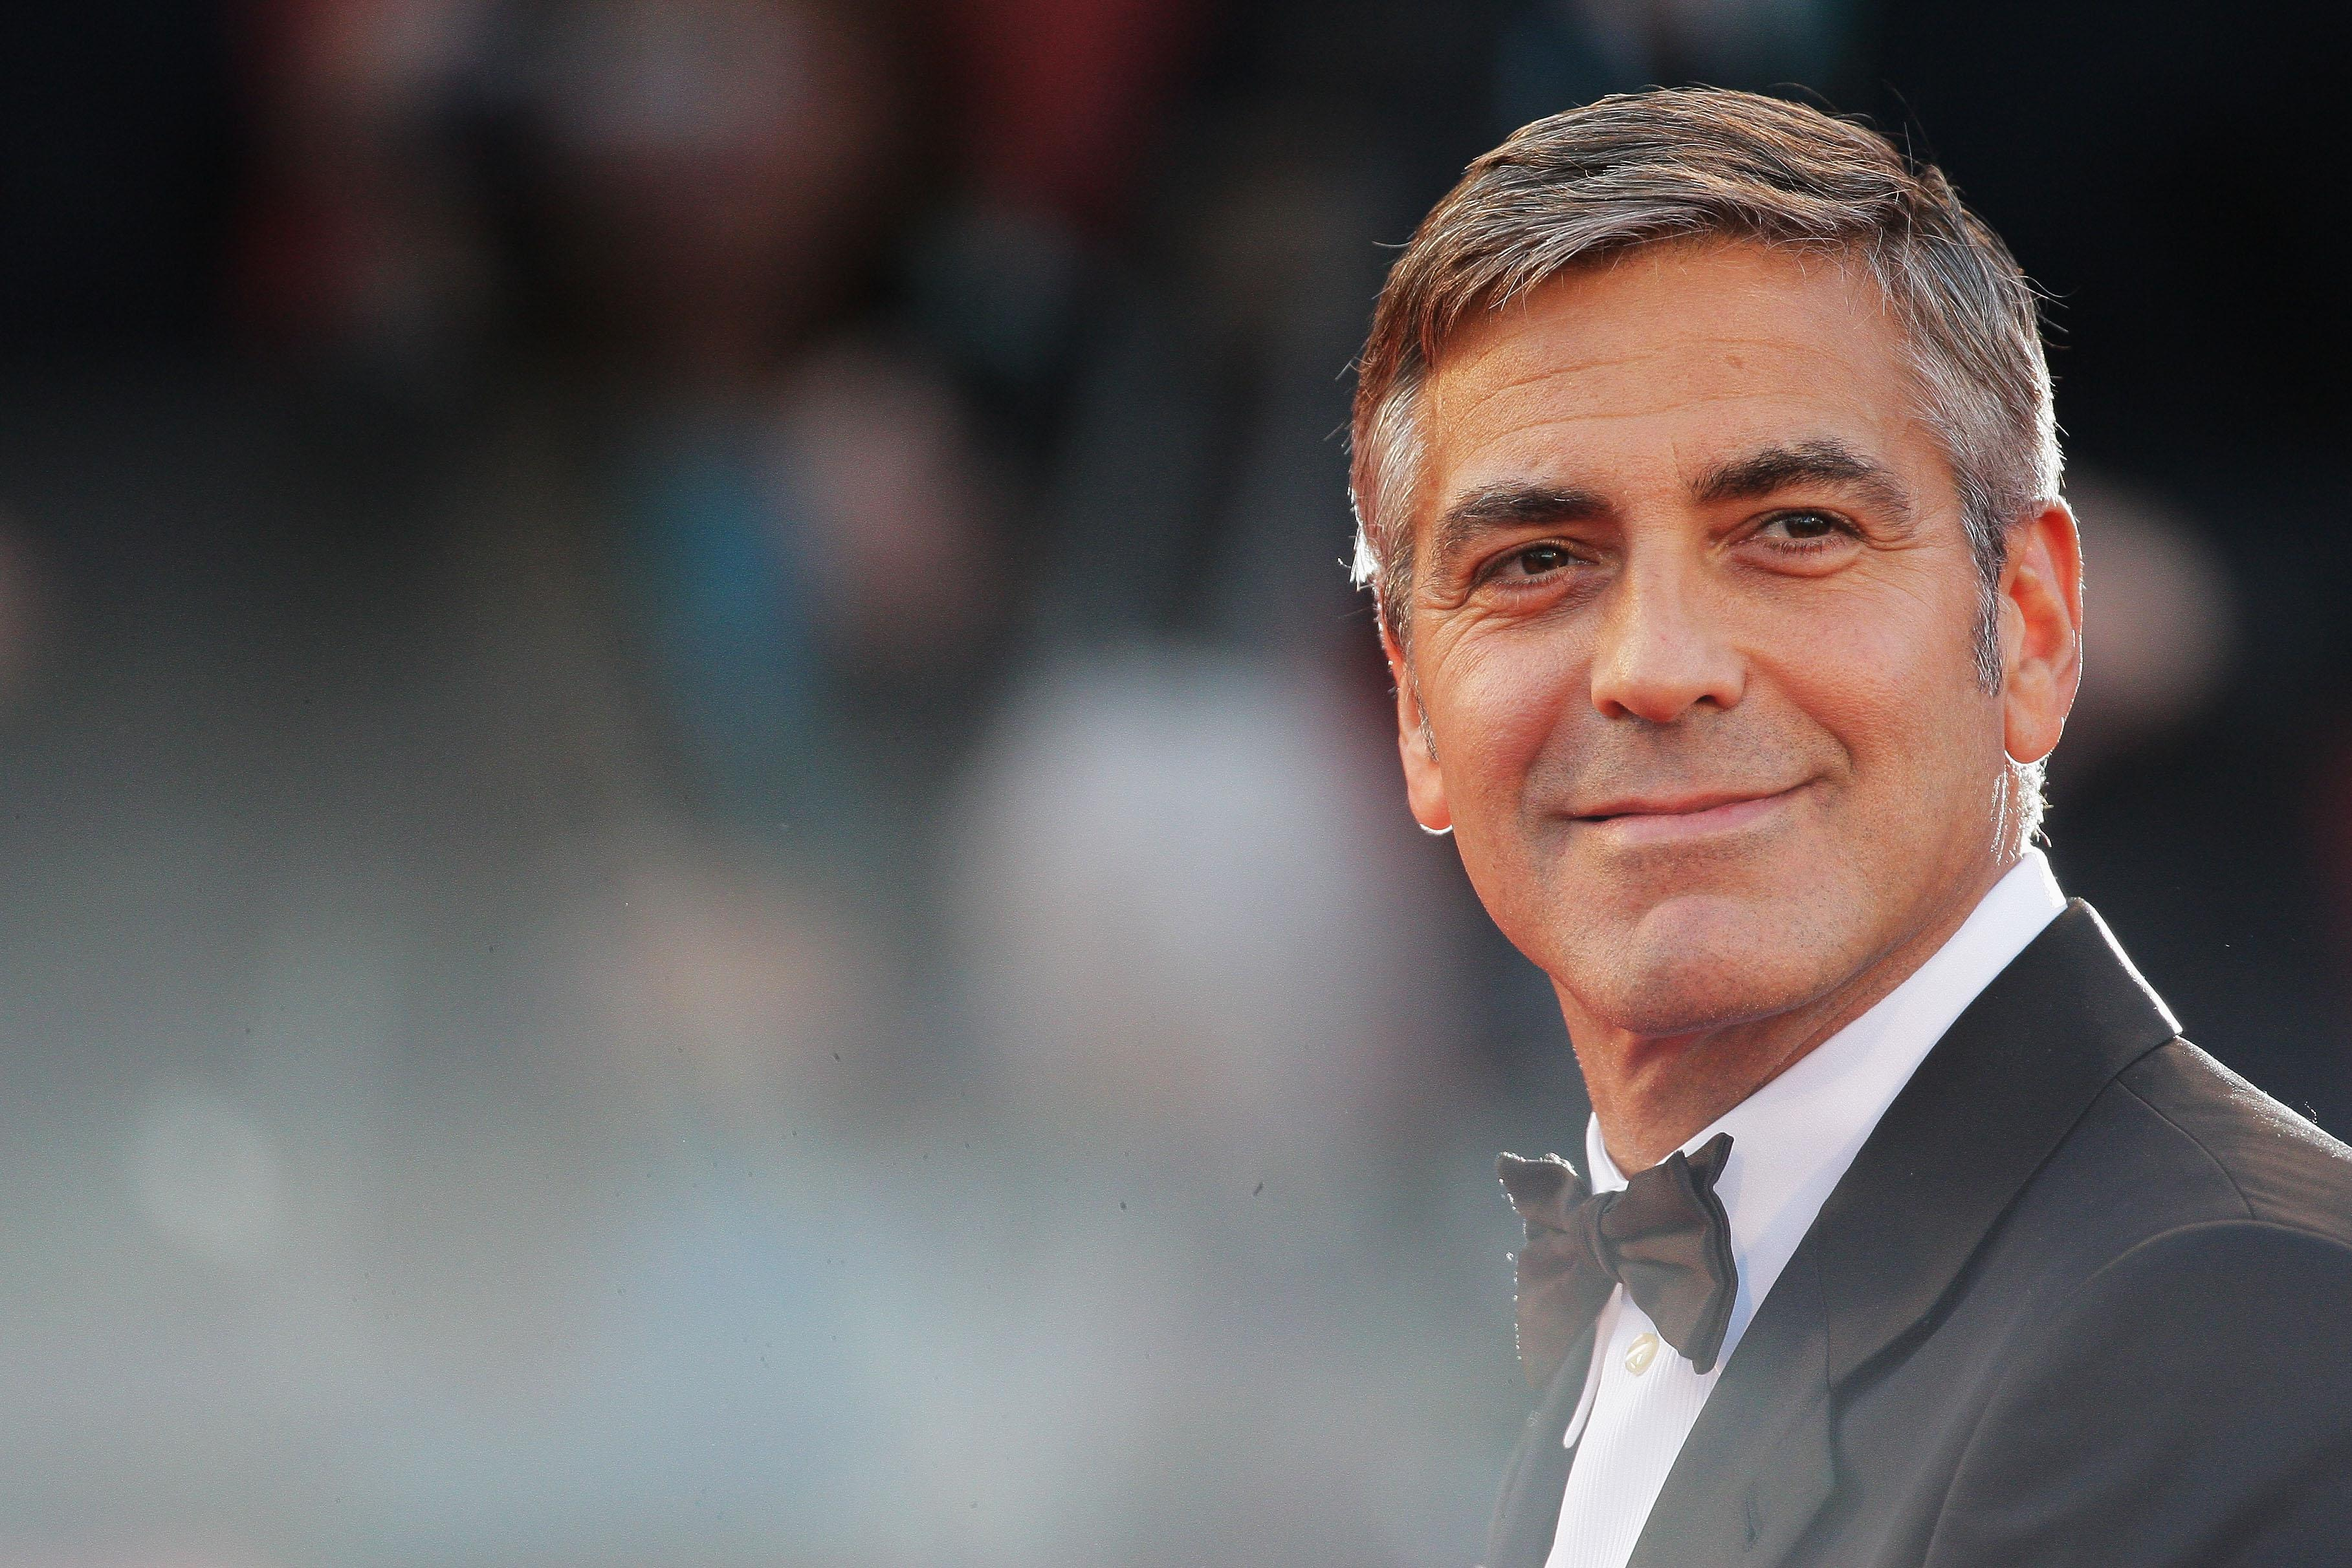 George Clooney May Be A Hollywood Superstar, But He's Been Keeping One Strange Secret Under His Hat